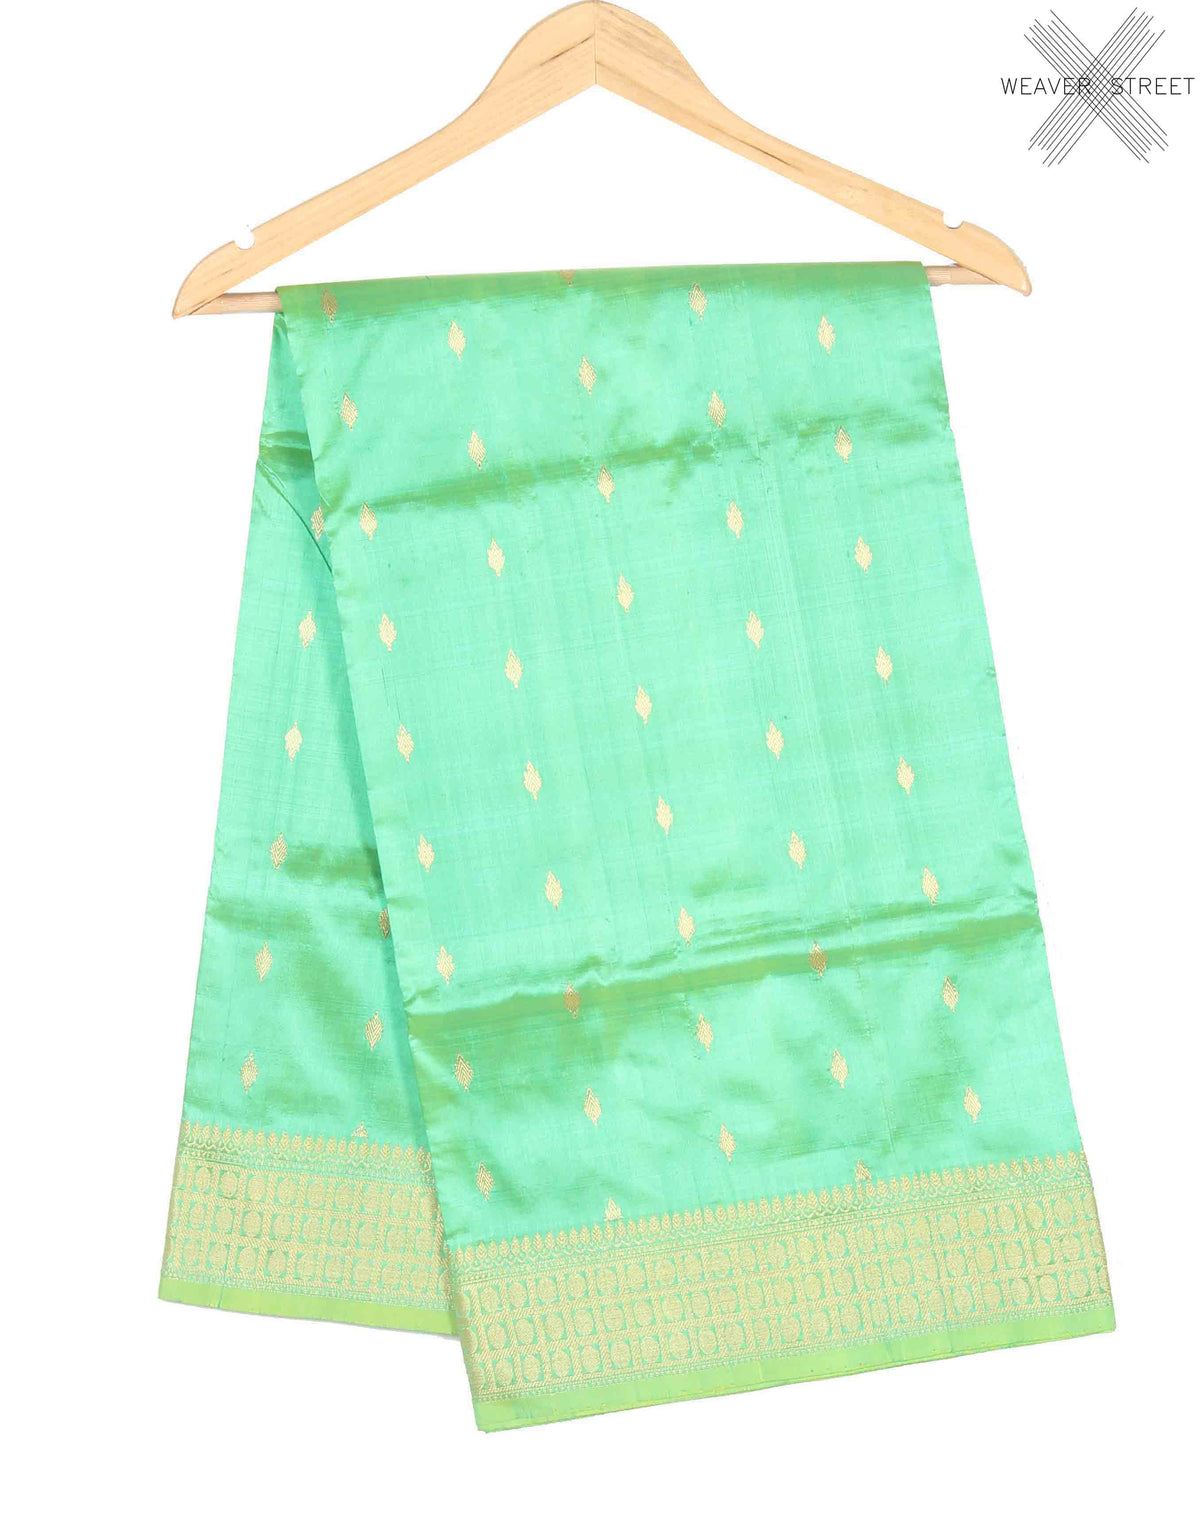 Sea Green Katan Silk Handwoven Banarasi saree with mini booti (1) Main